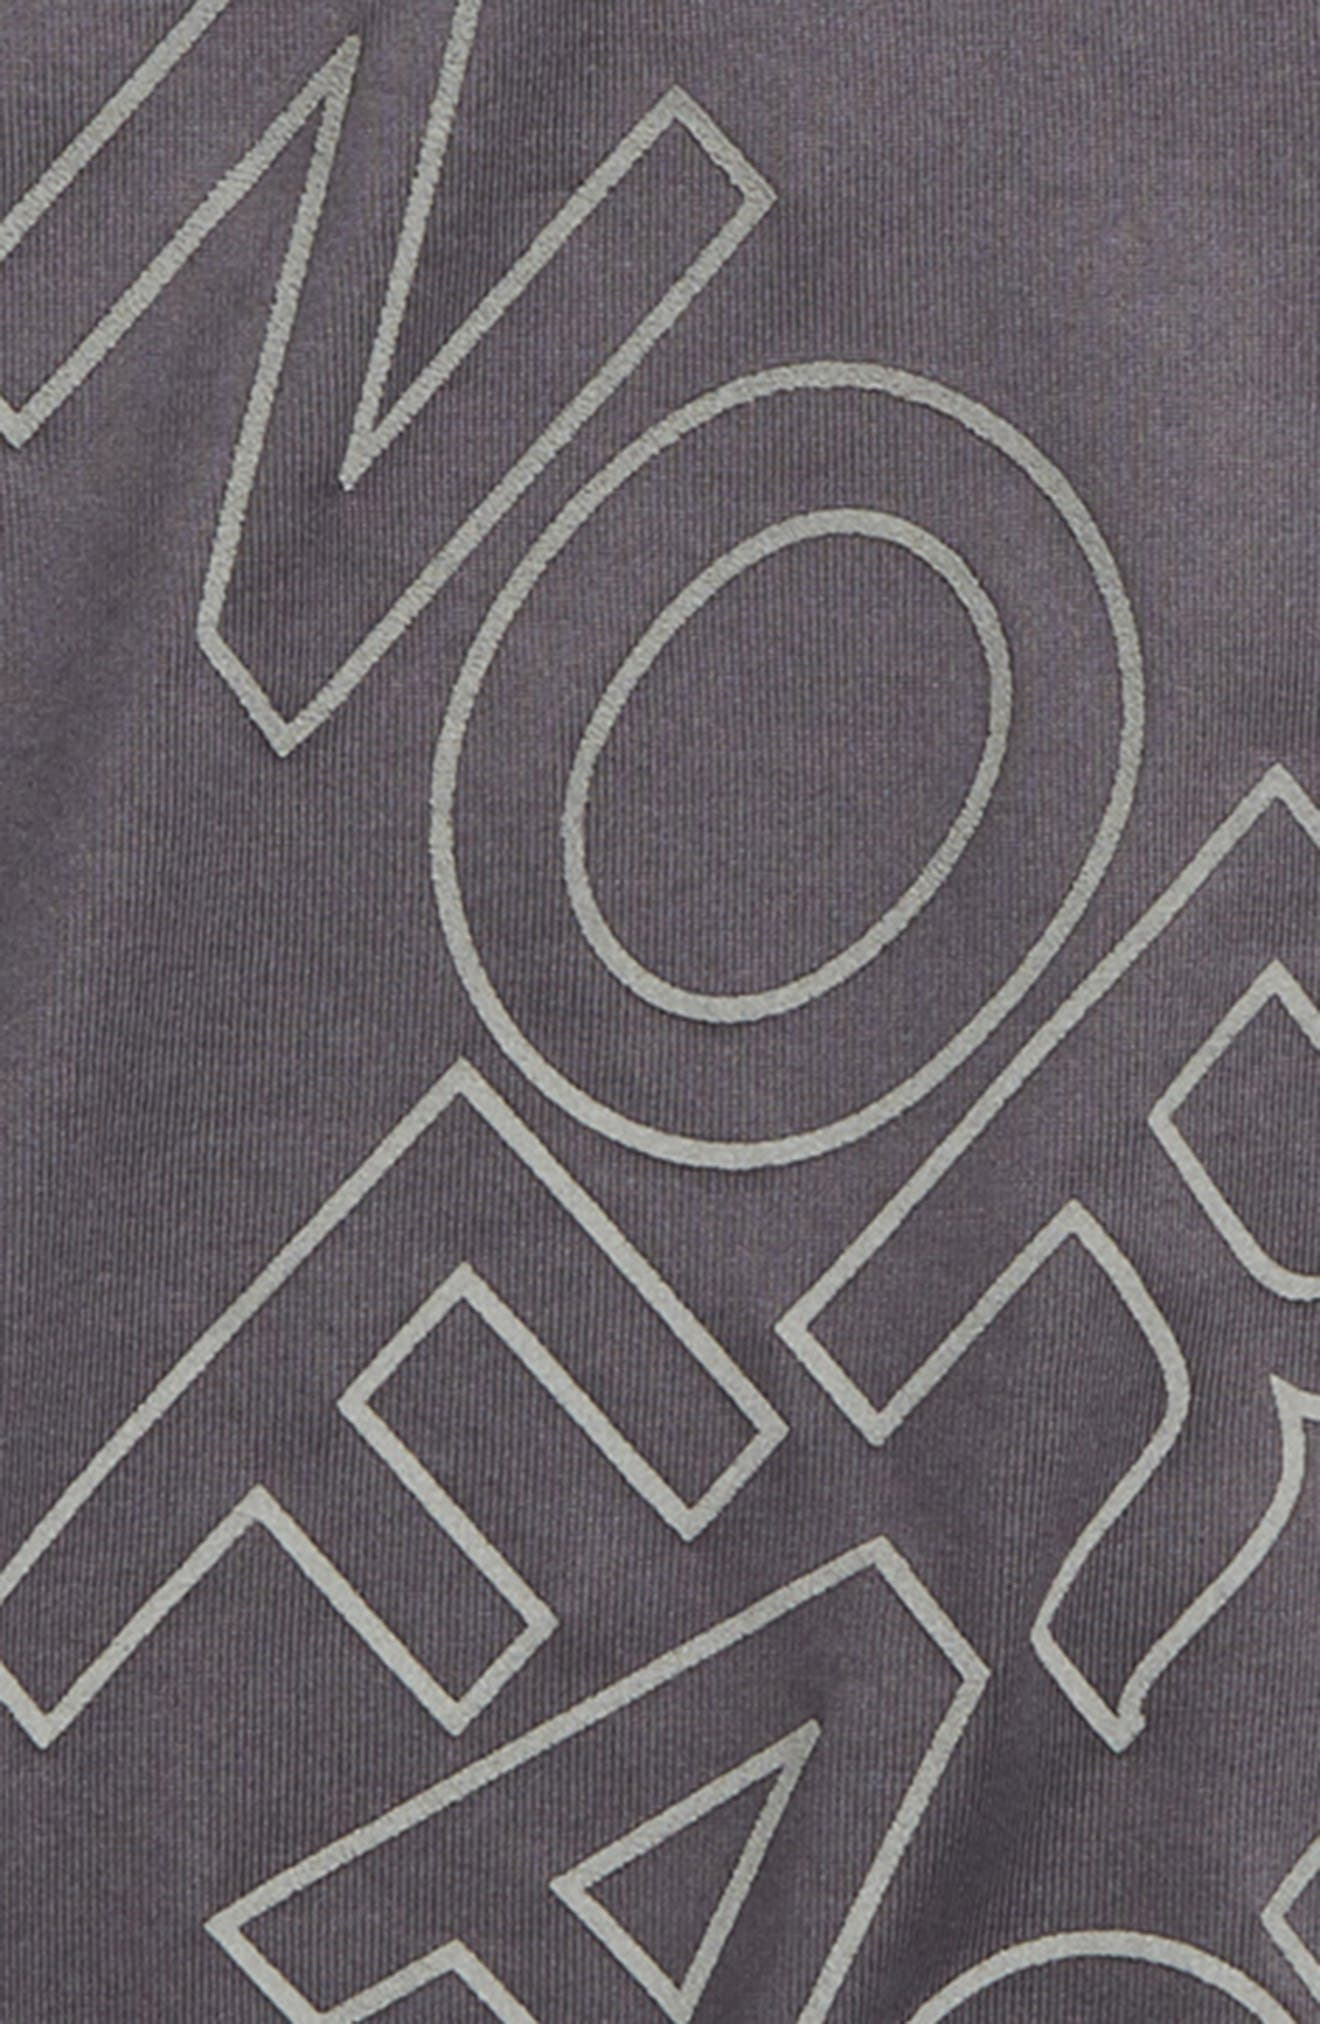 Reaxion Tee,                             Alternate thumbnail 2, color,                             Graphite Grey